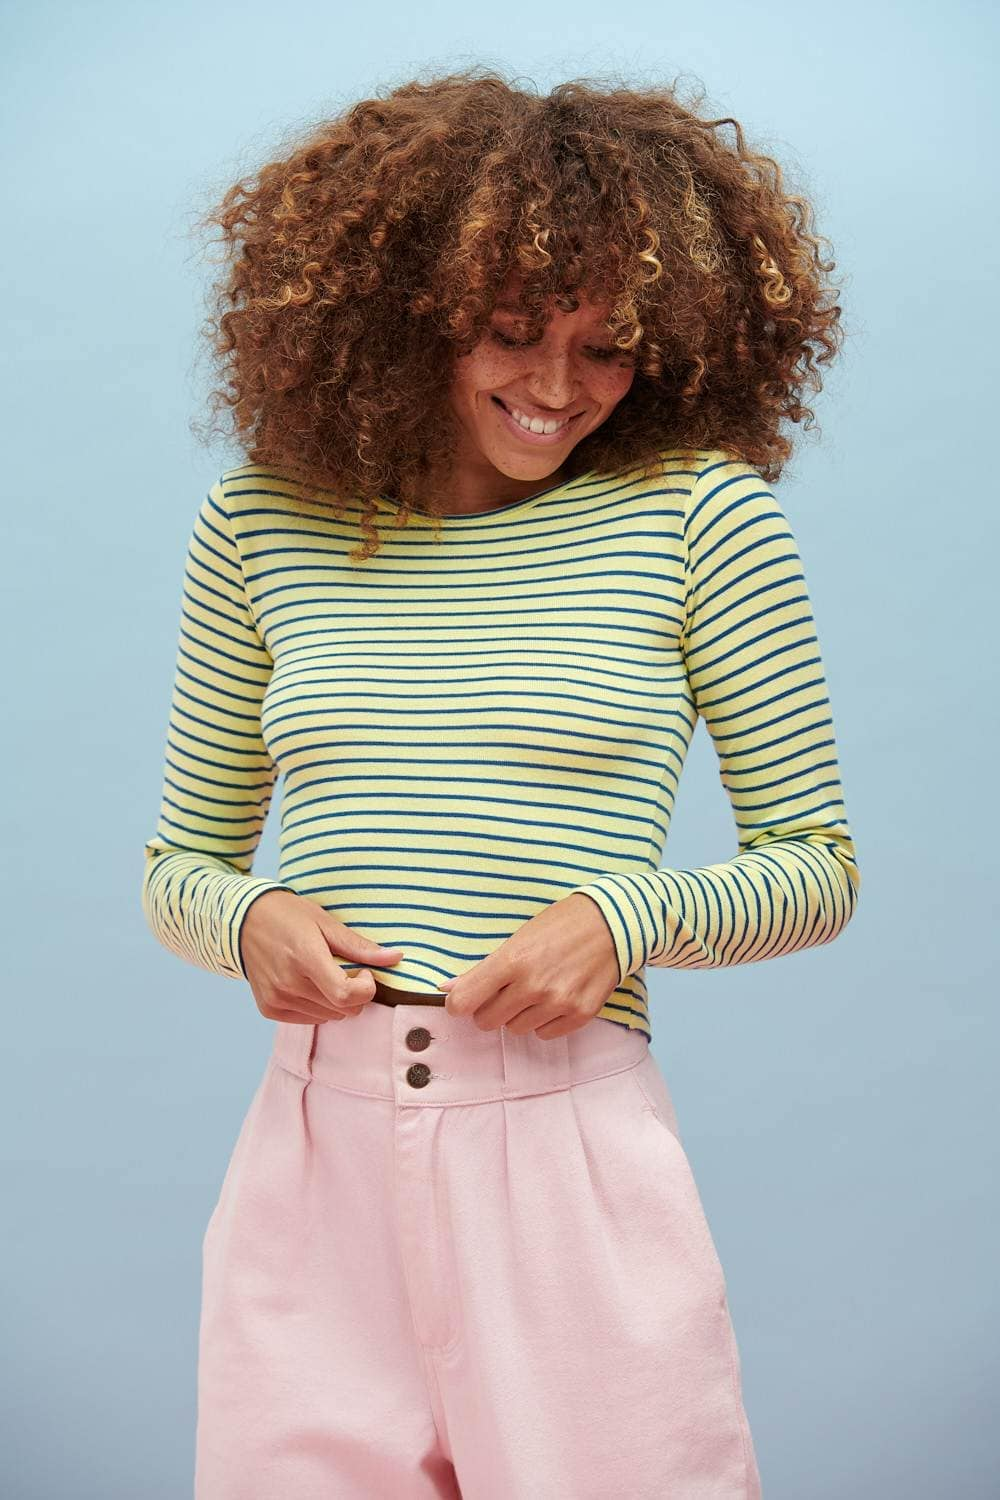 Lucy & Yak Tops Rey Long Sleeved Top In Blue & Yellow Stripes